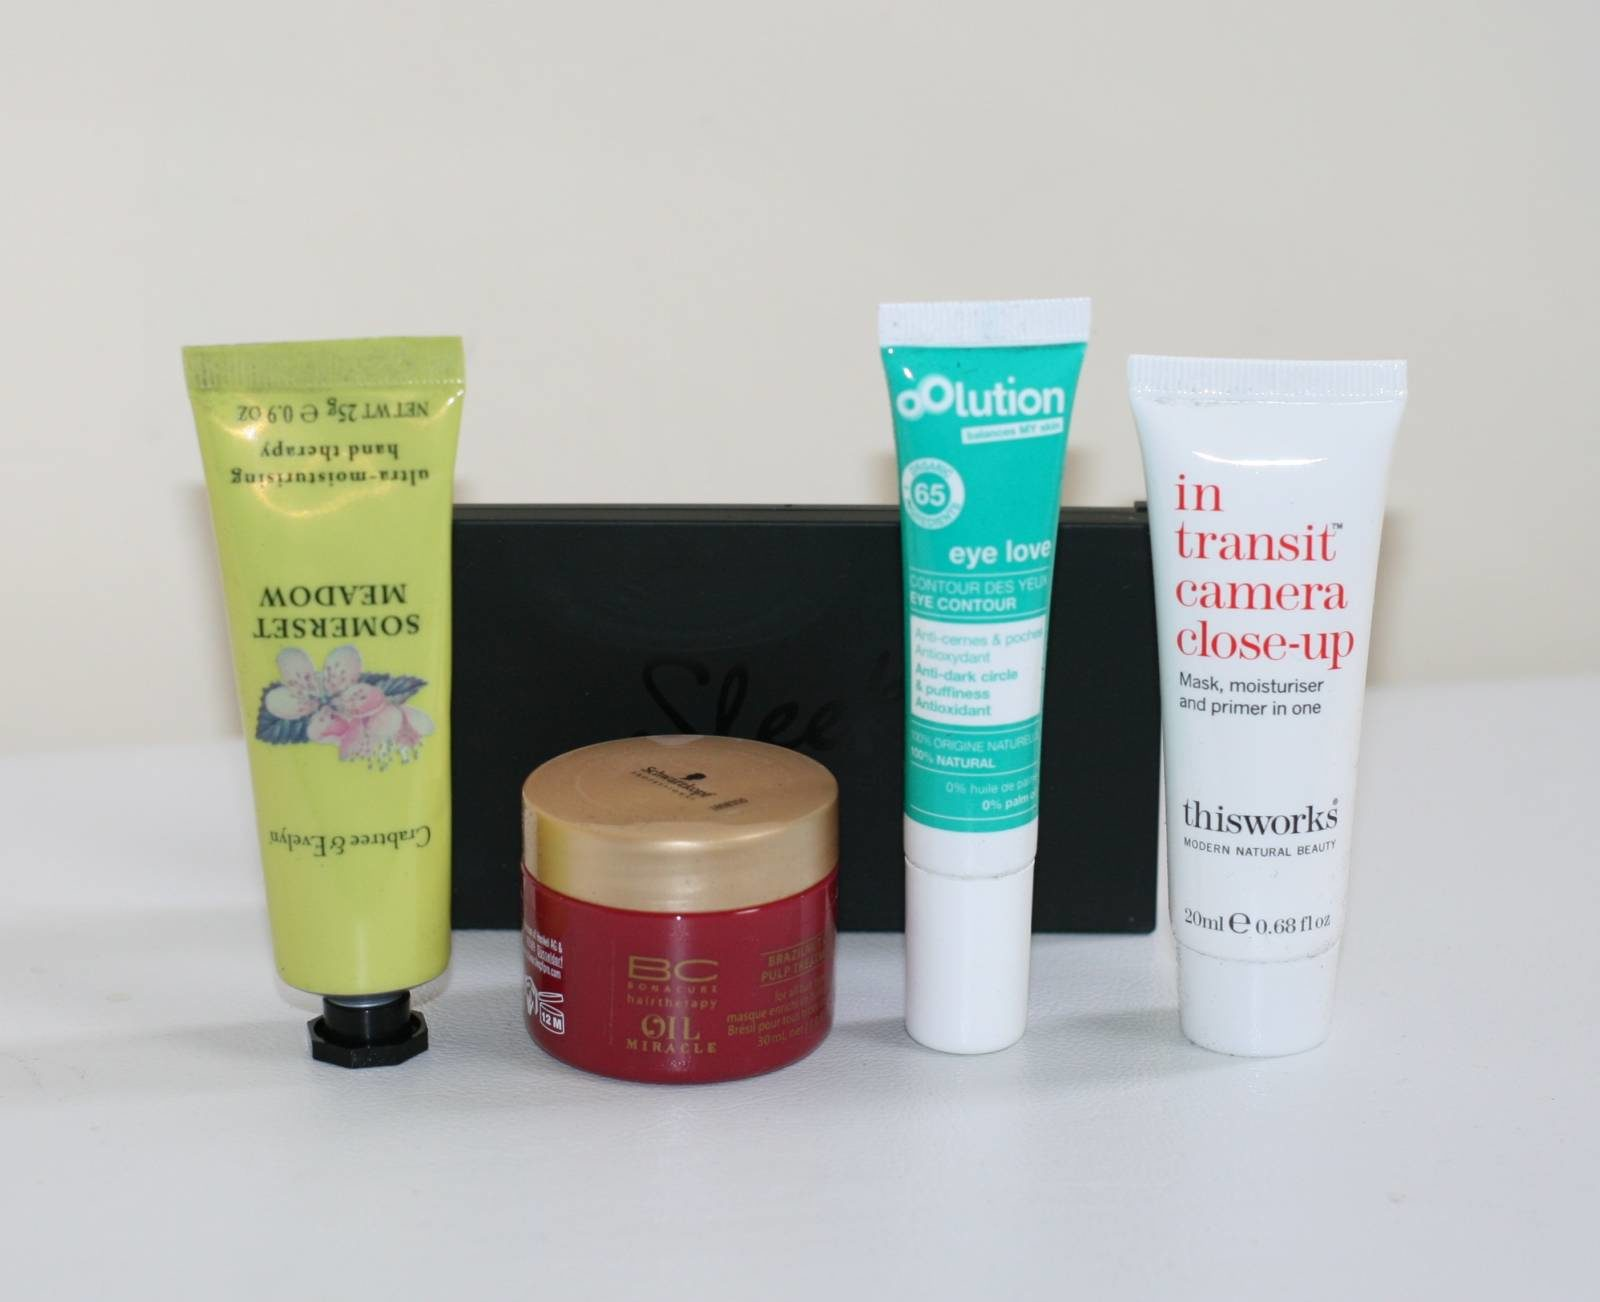 Glossybox March 2017 Contents